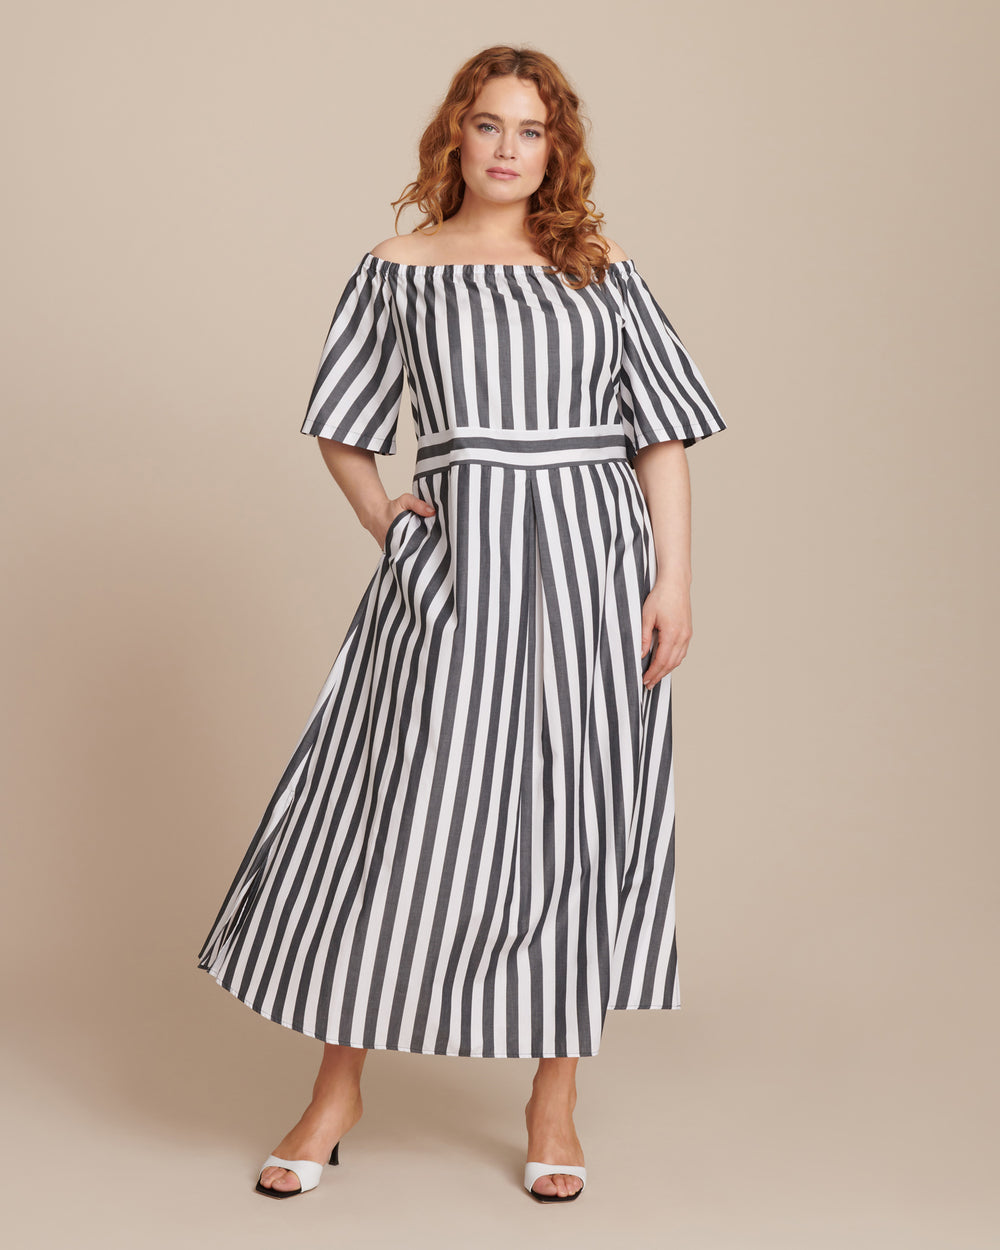 Denotato Off the Shoulder Dress